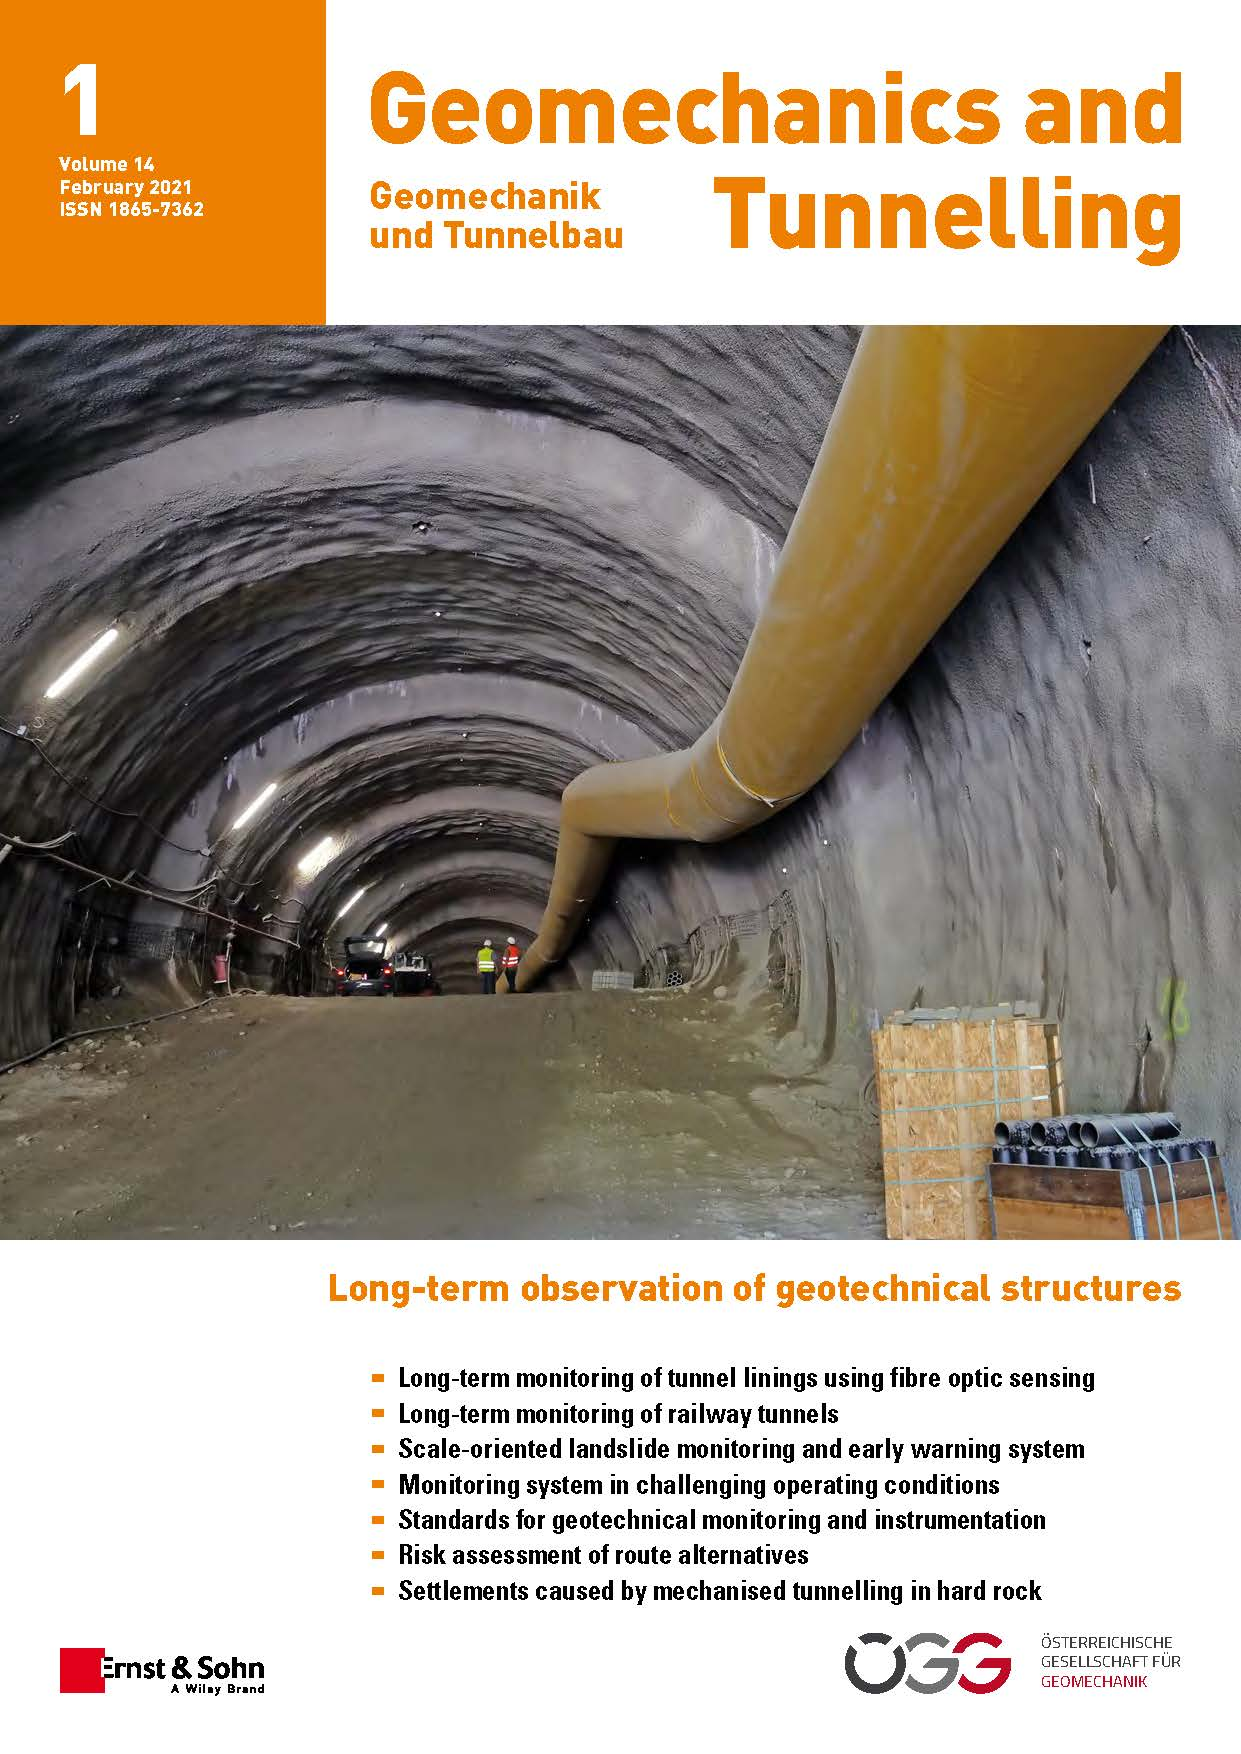 Journal Geomechanics and Tunnelling 1/21 published